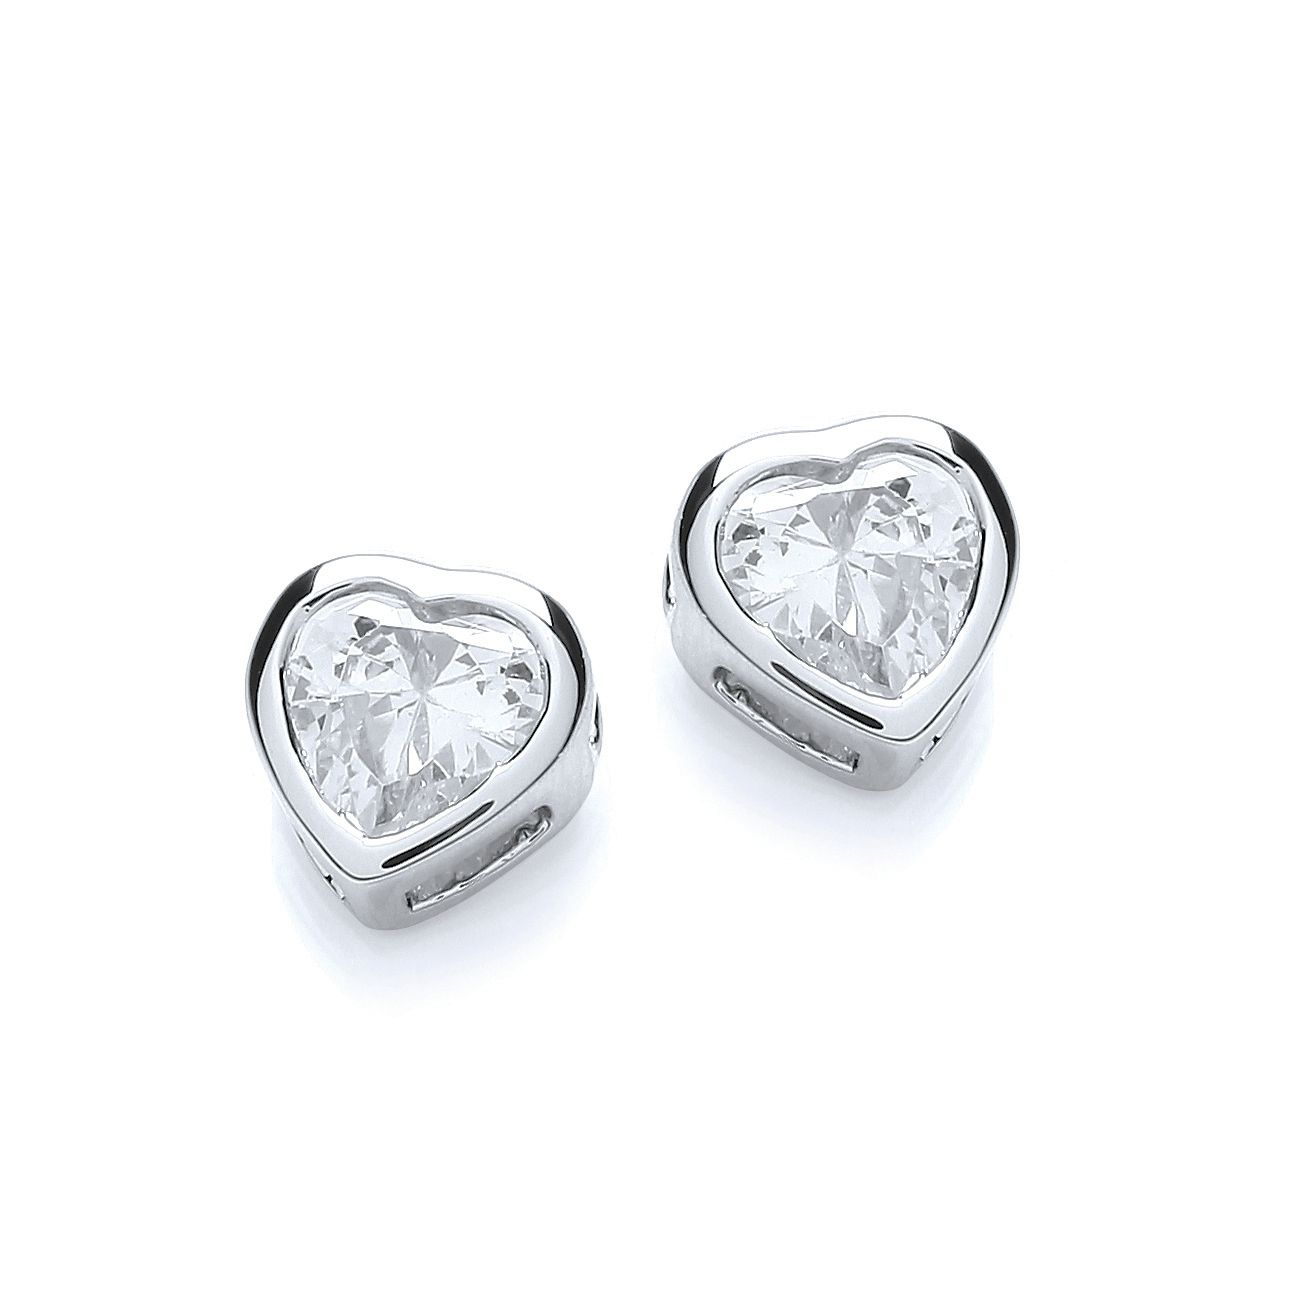 Rhodium plate simple heart earrings